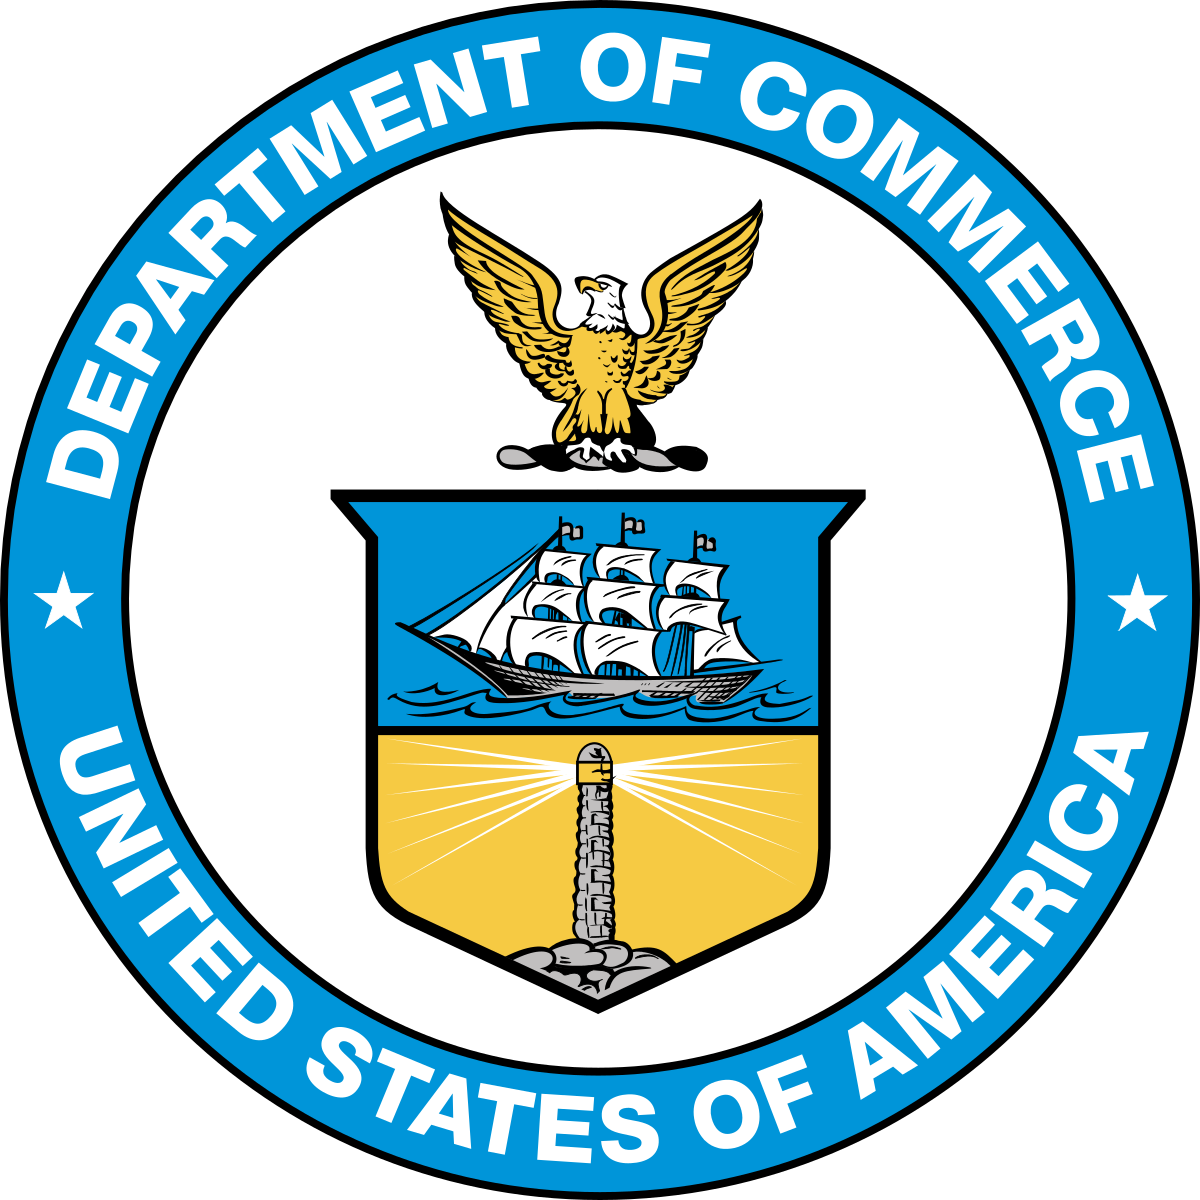 1200px-Seal_of_the_United_States_Department_of_Commerce.svg